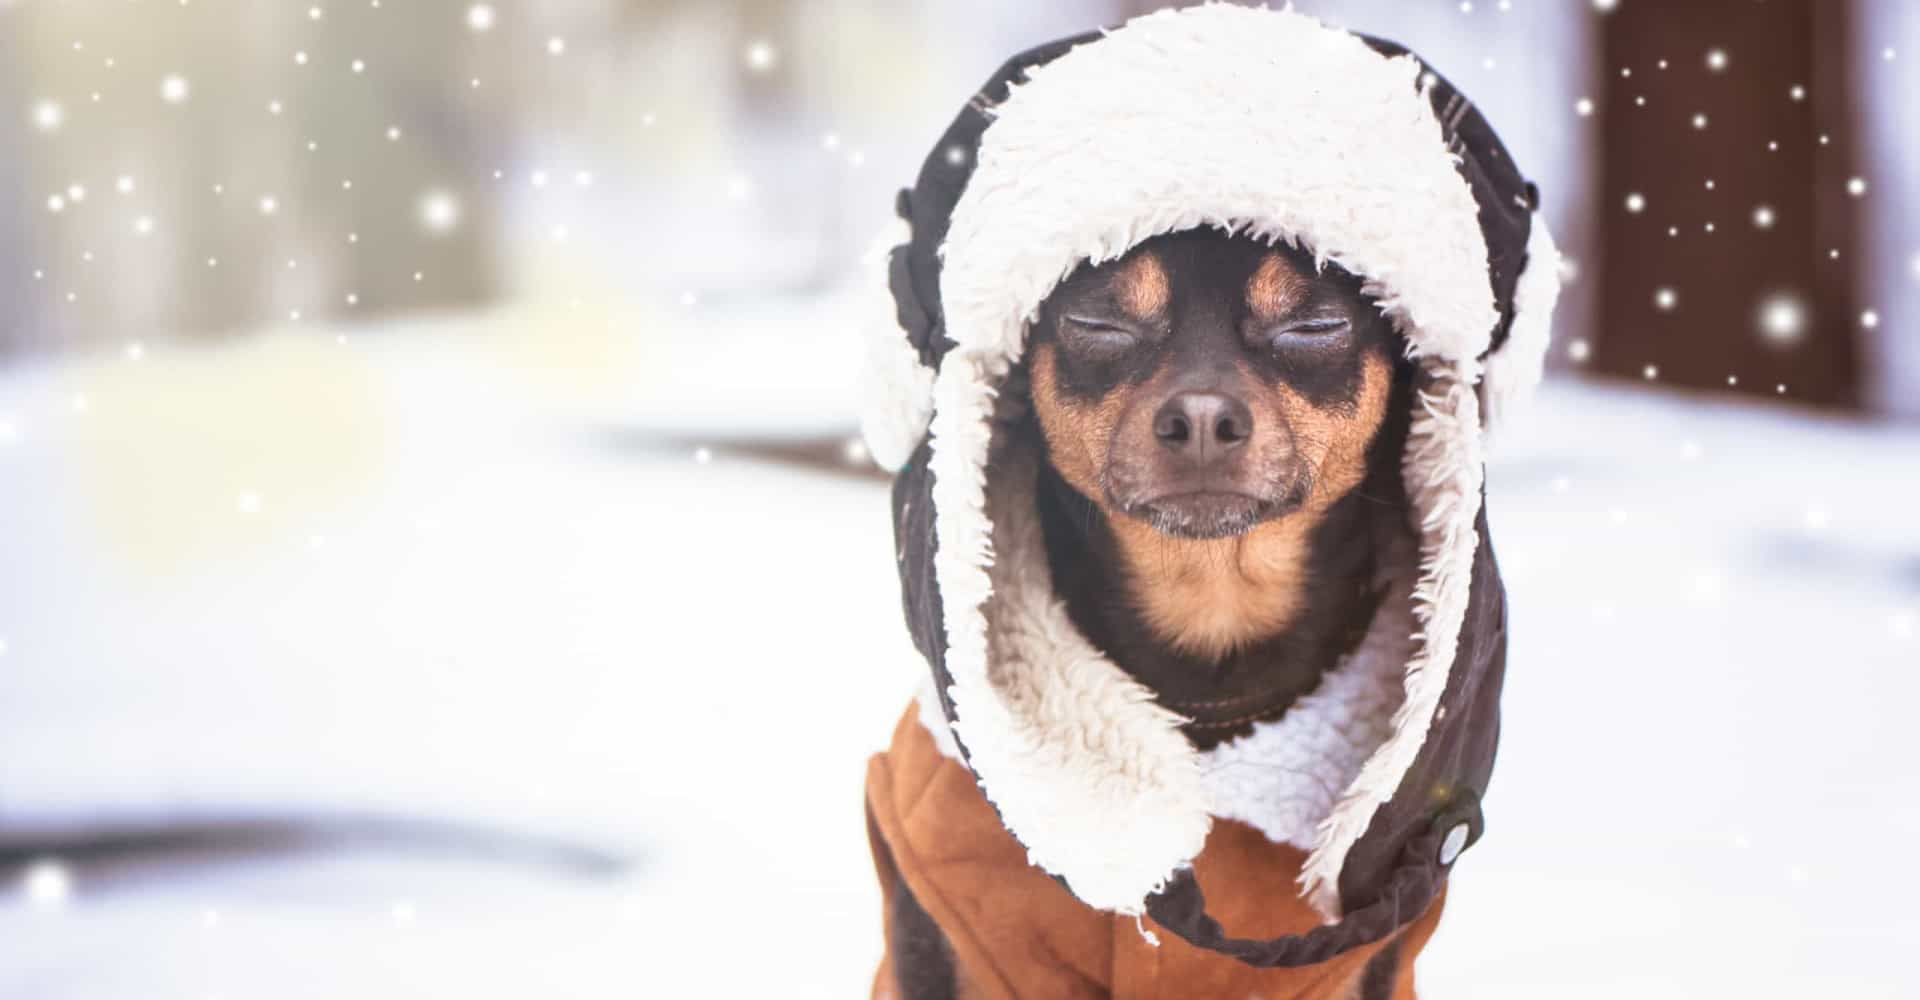 How to protect your pets during winter